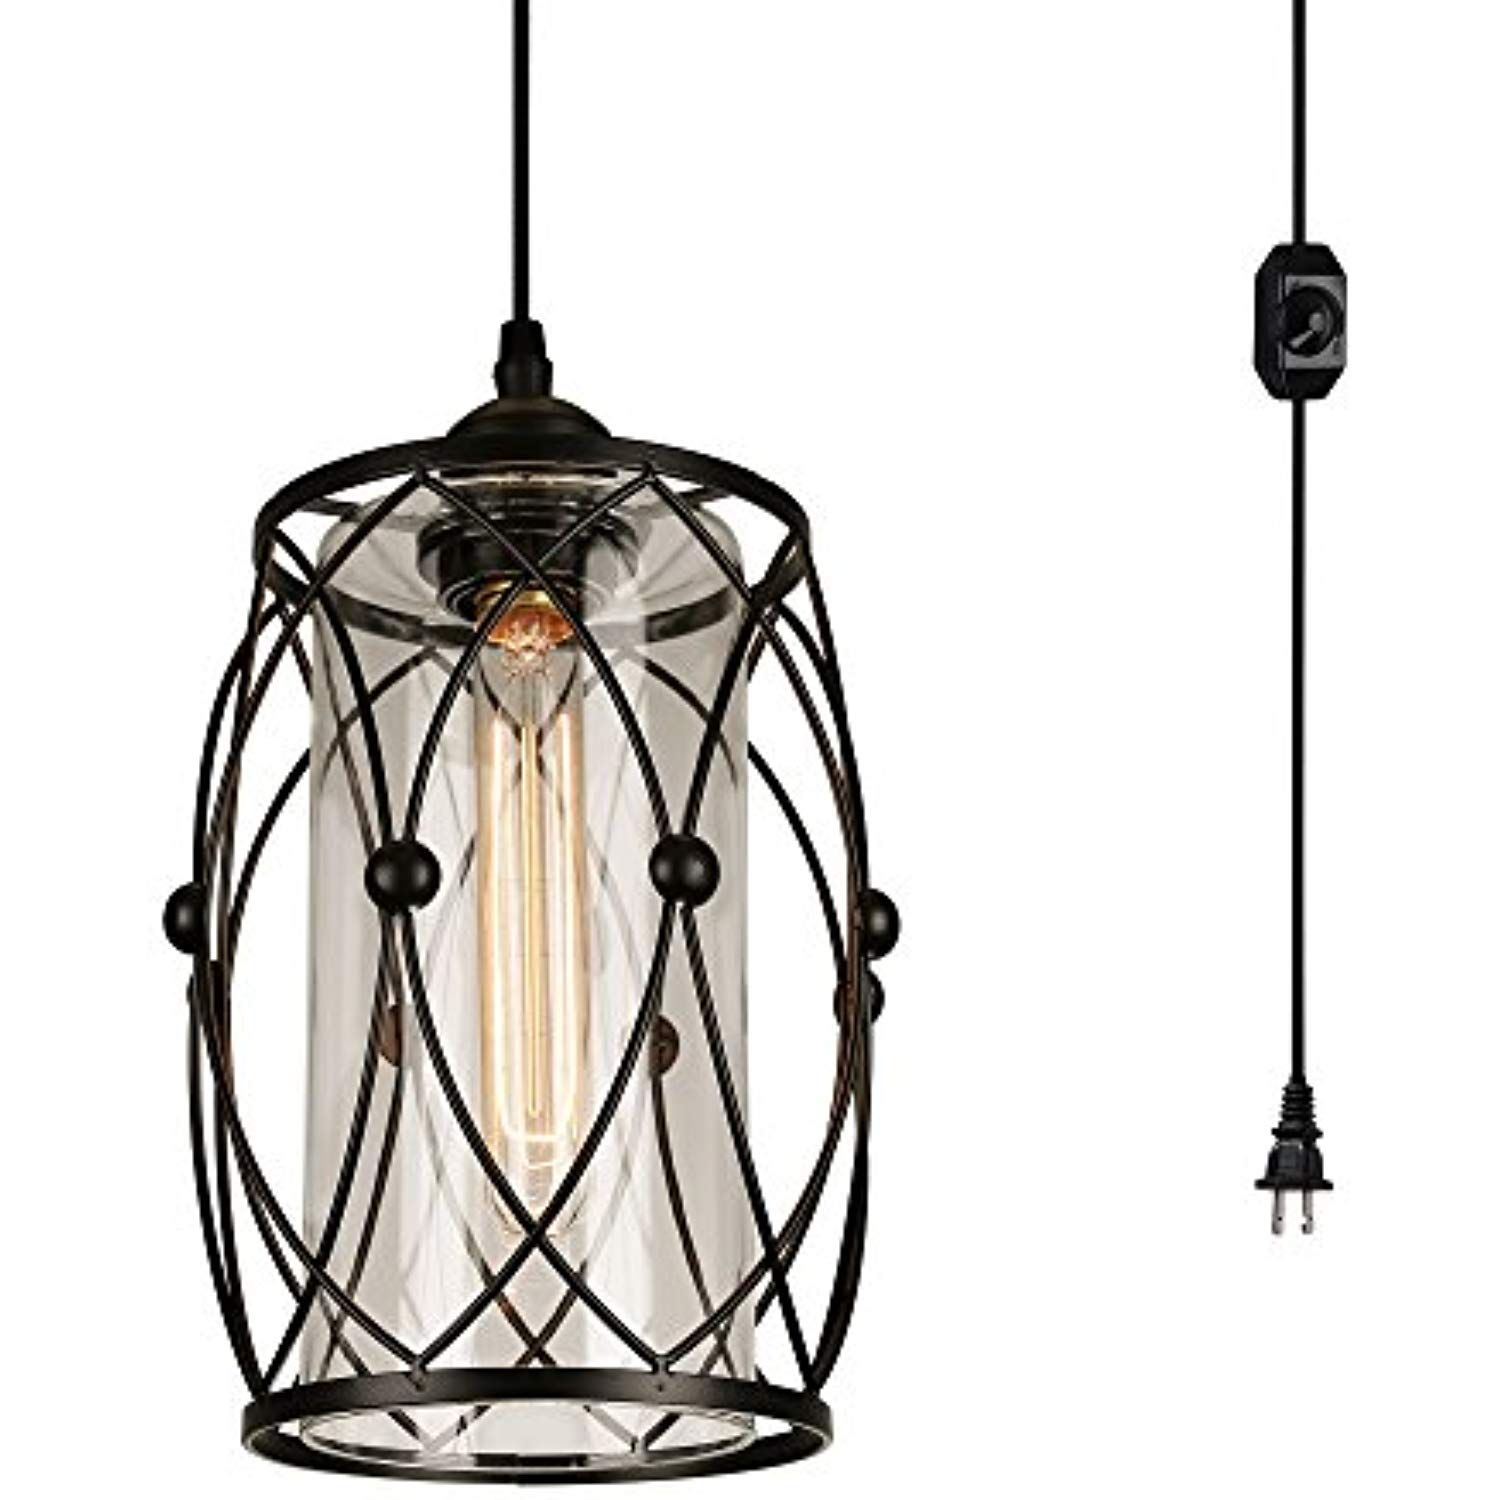 HMVPL Plug-in Pendant Lights with Glass Lamp-Shade 16.4 ft Hanging Cord and On//